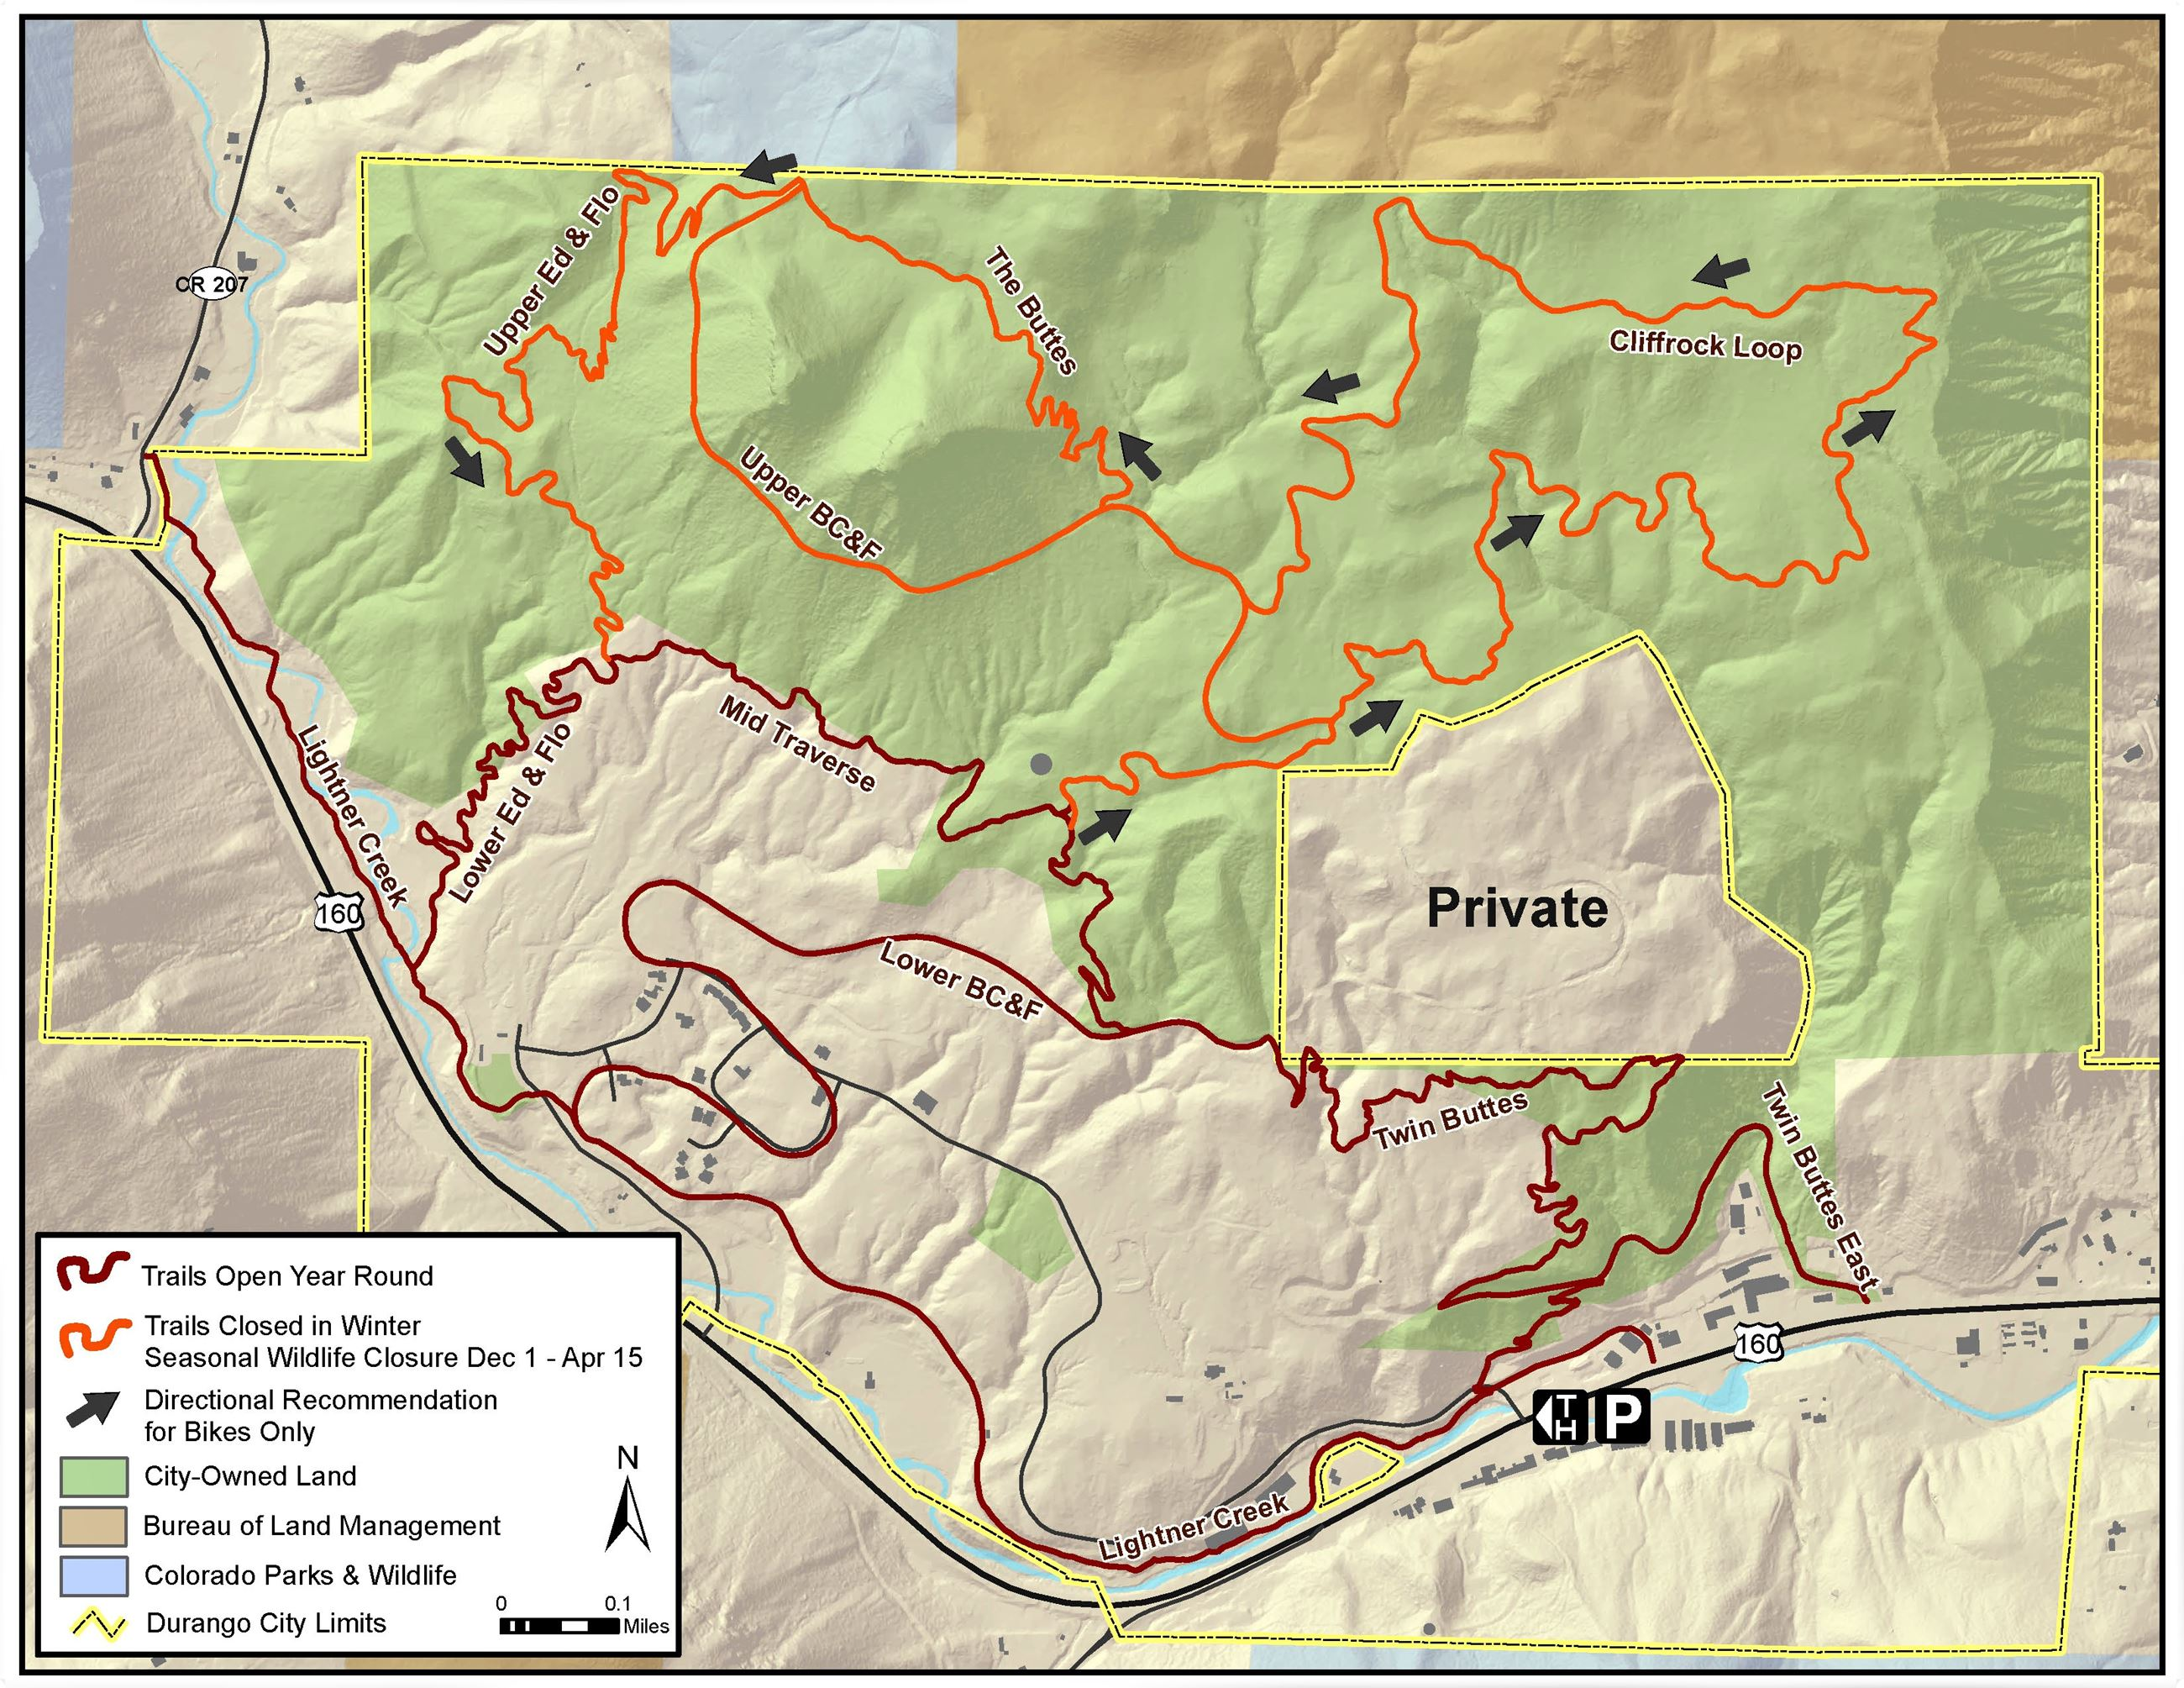 eMTB Trial Period at Twin Buttes Map